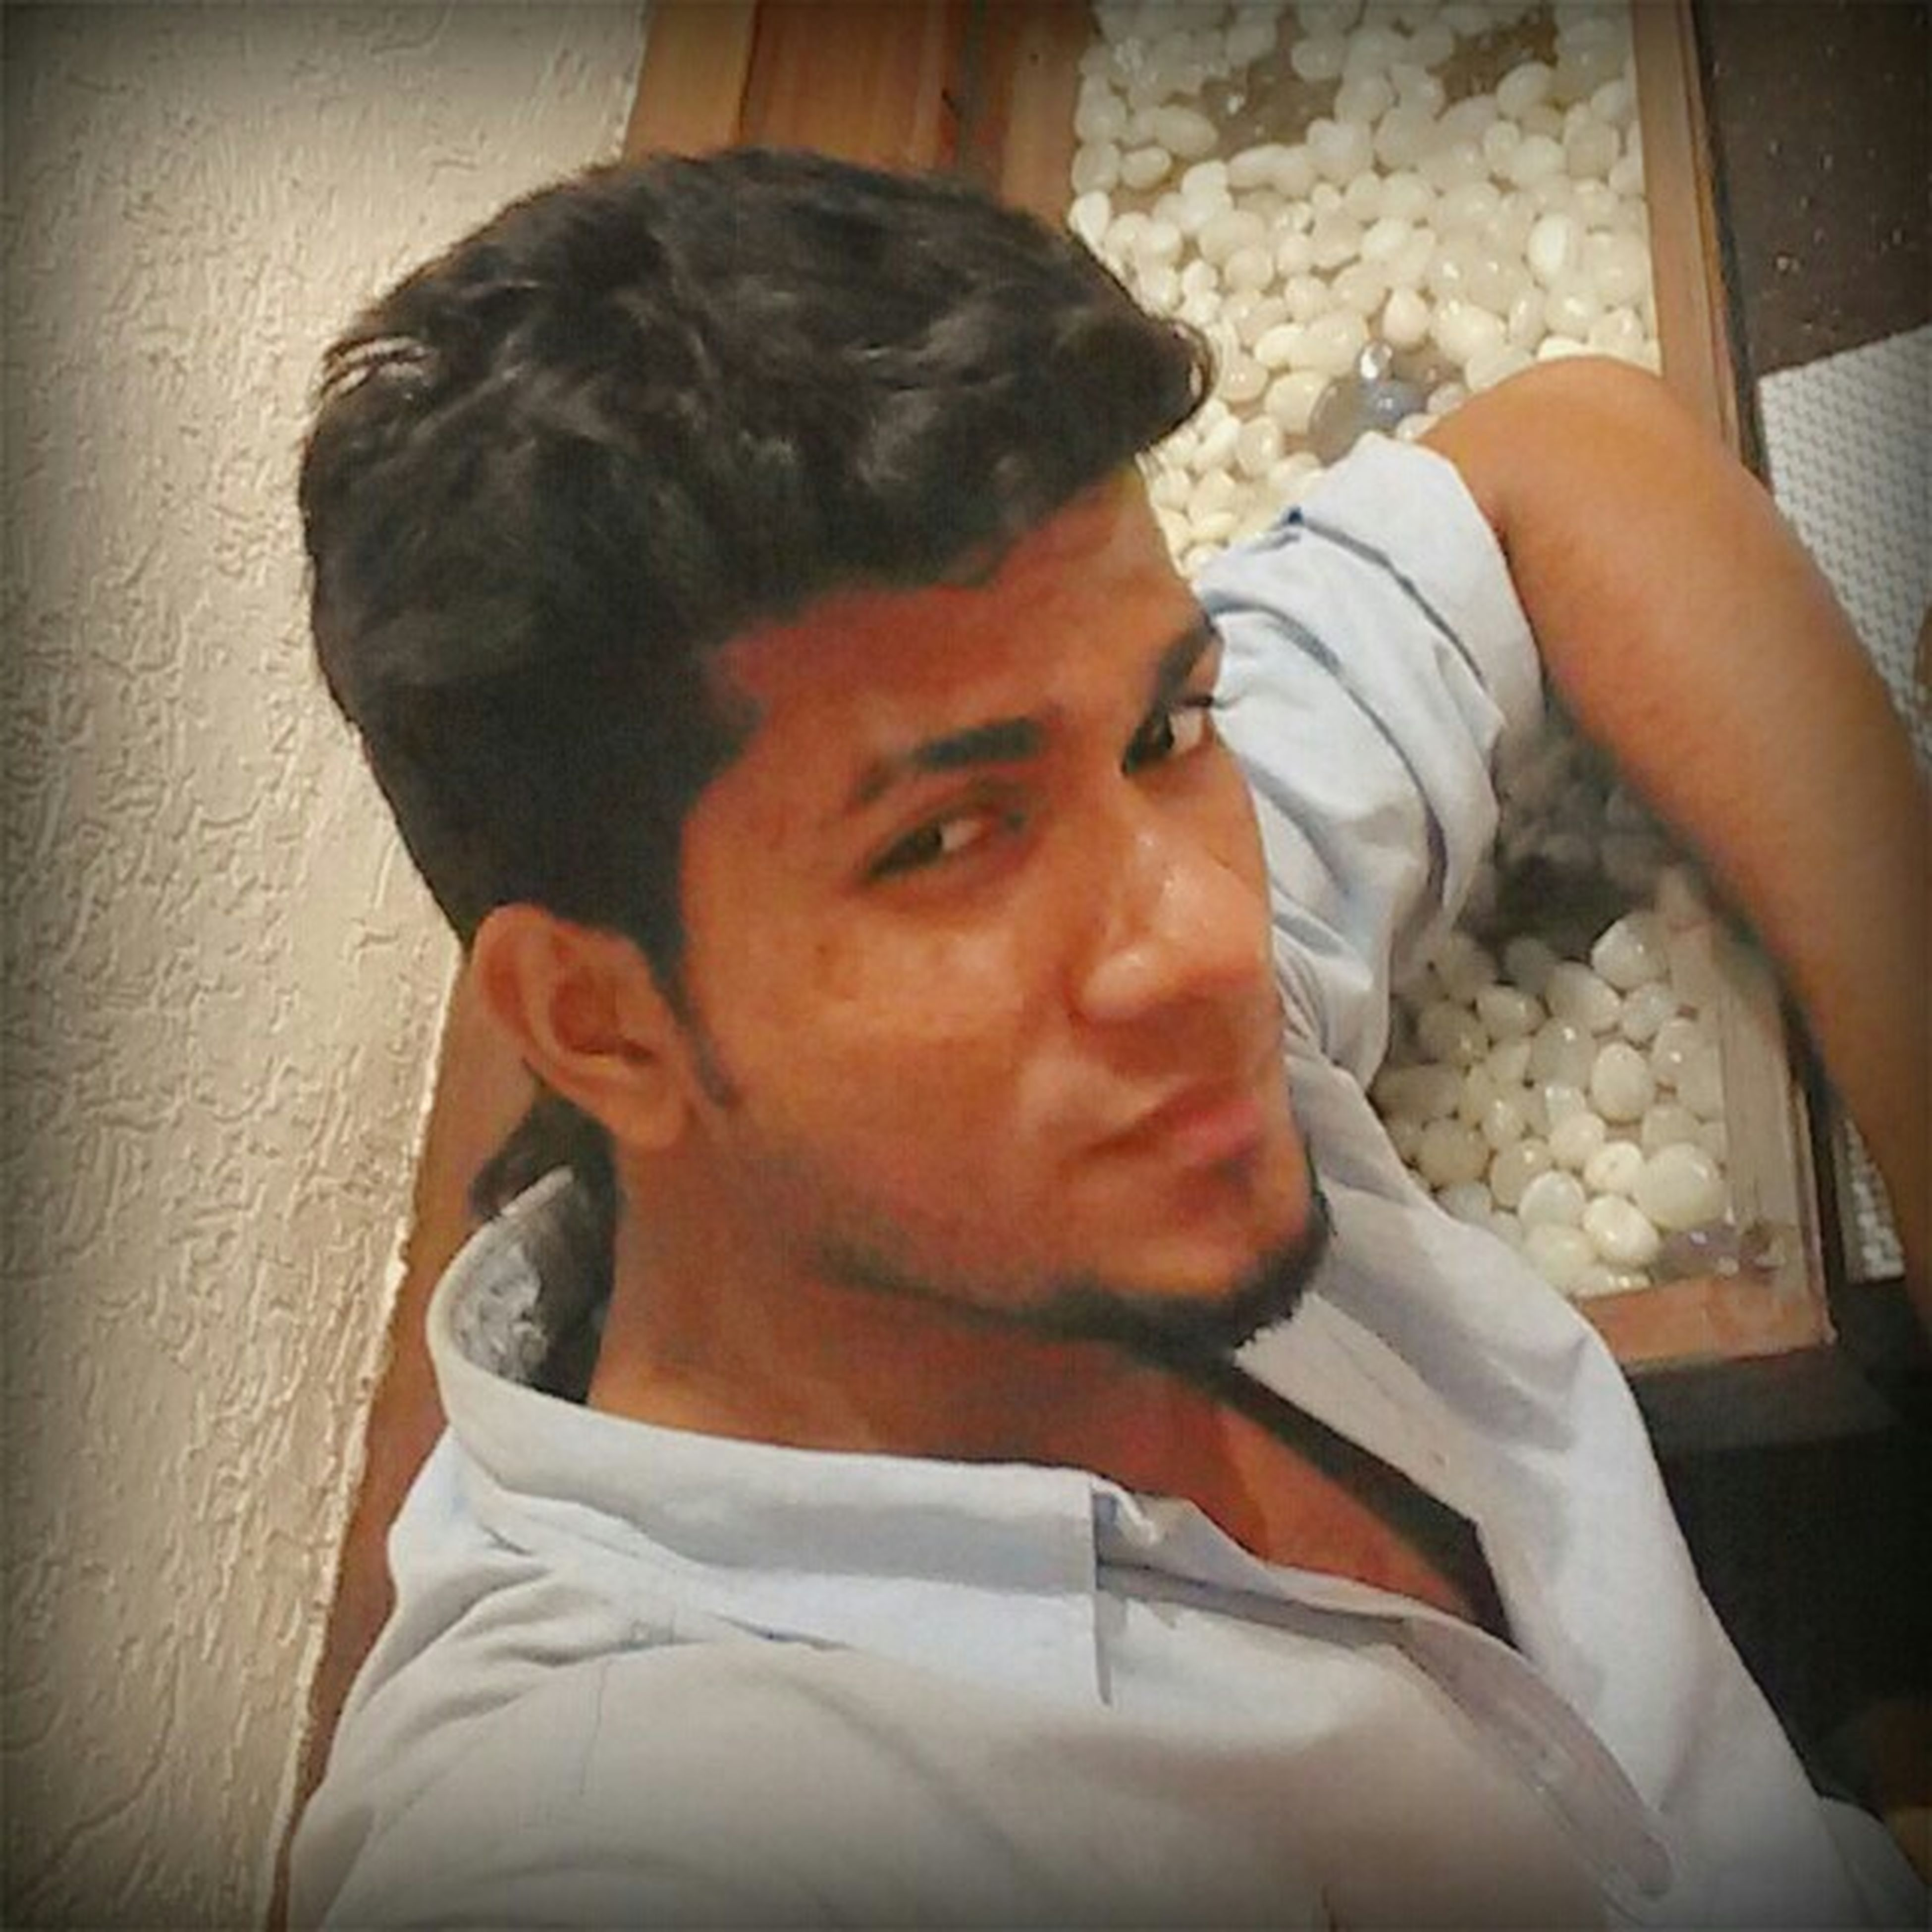 Selfie ✌ Indian Hairstyle Faces Of EyeEm Popolar Photo Selfportrait Check This Out Party Time! Old Pic  Enjoying Life #..